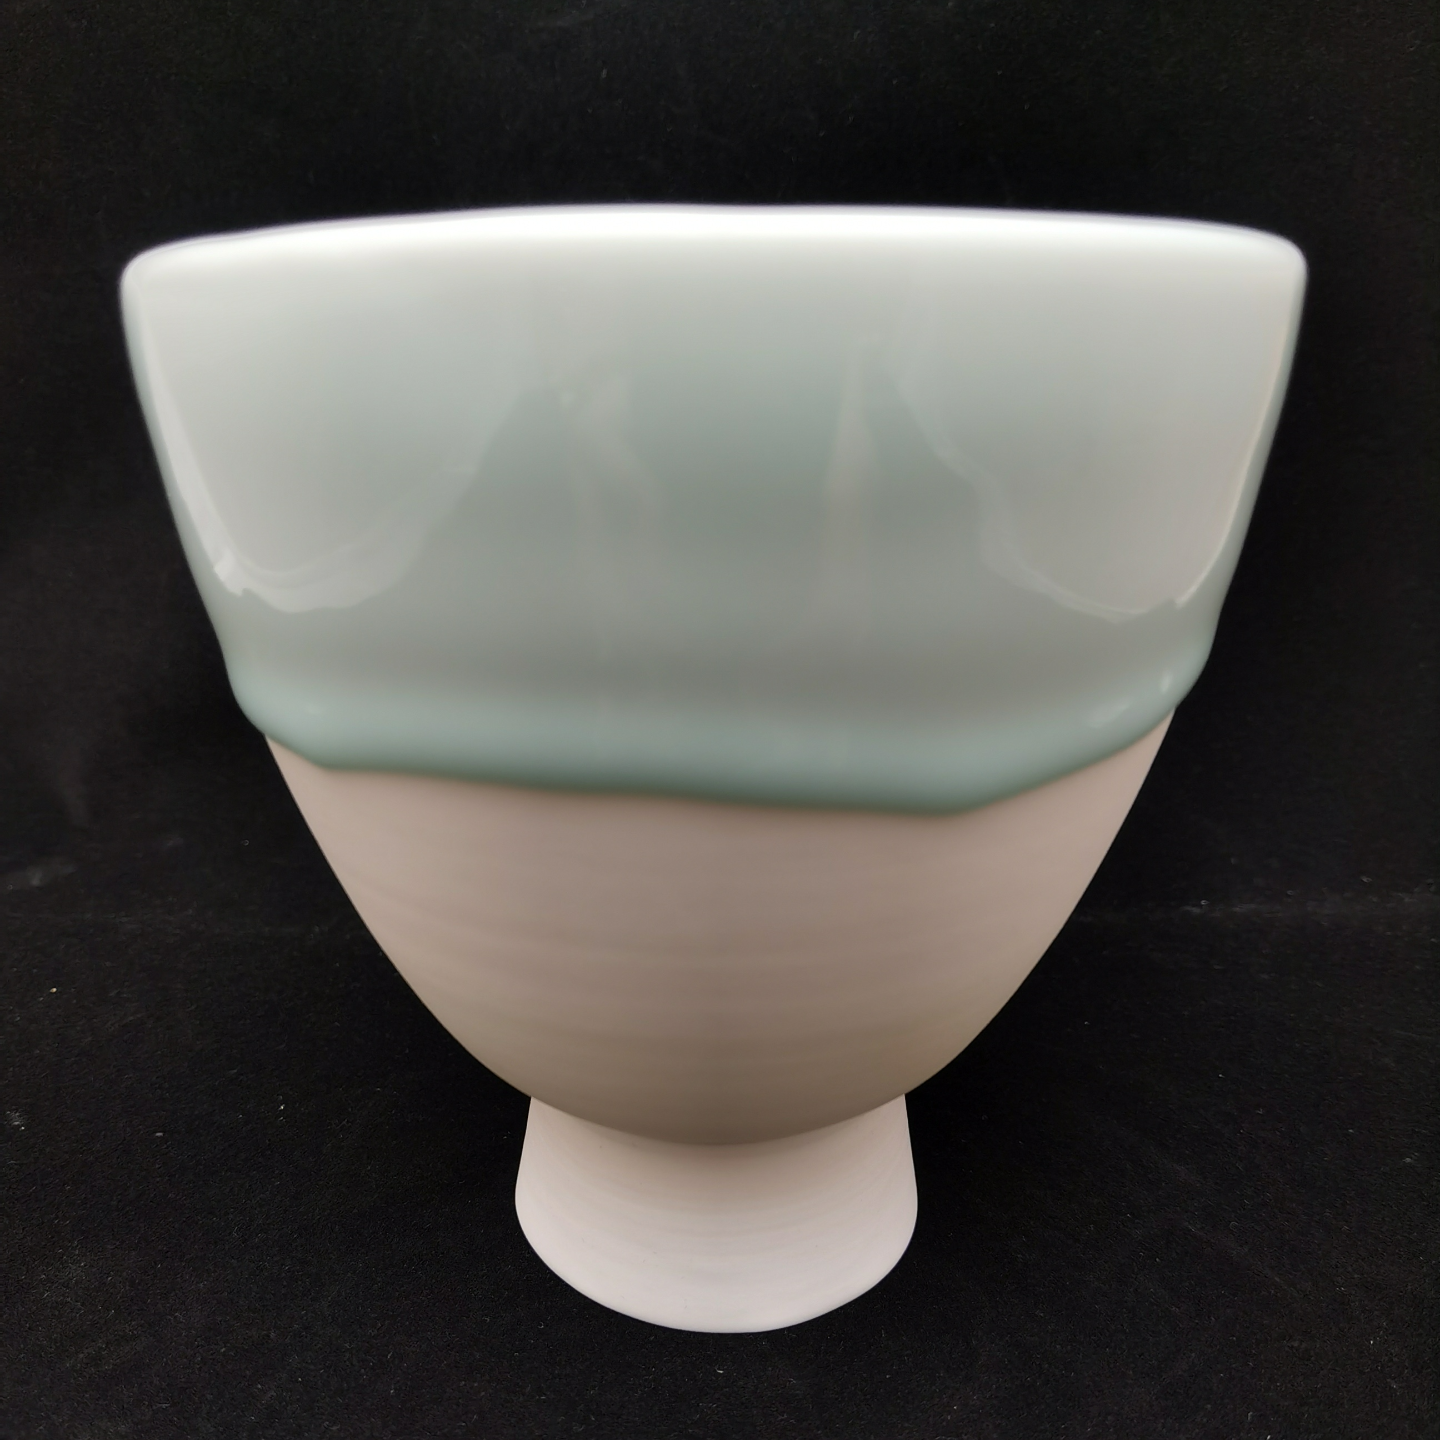 Green White Melting Snow Series - Tall Bowl